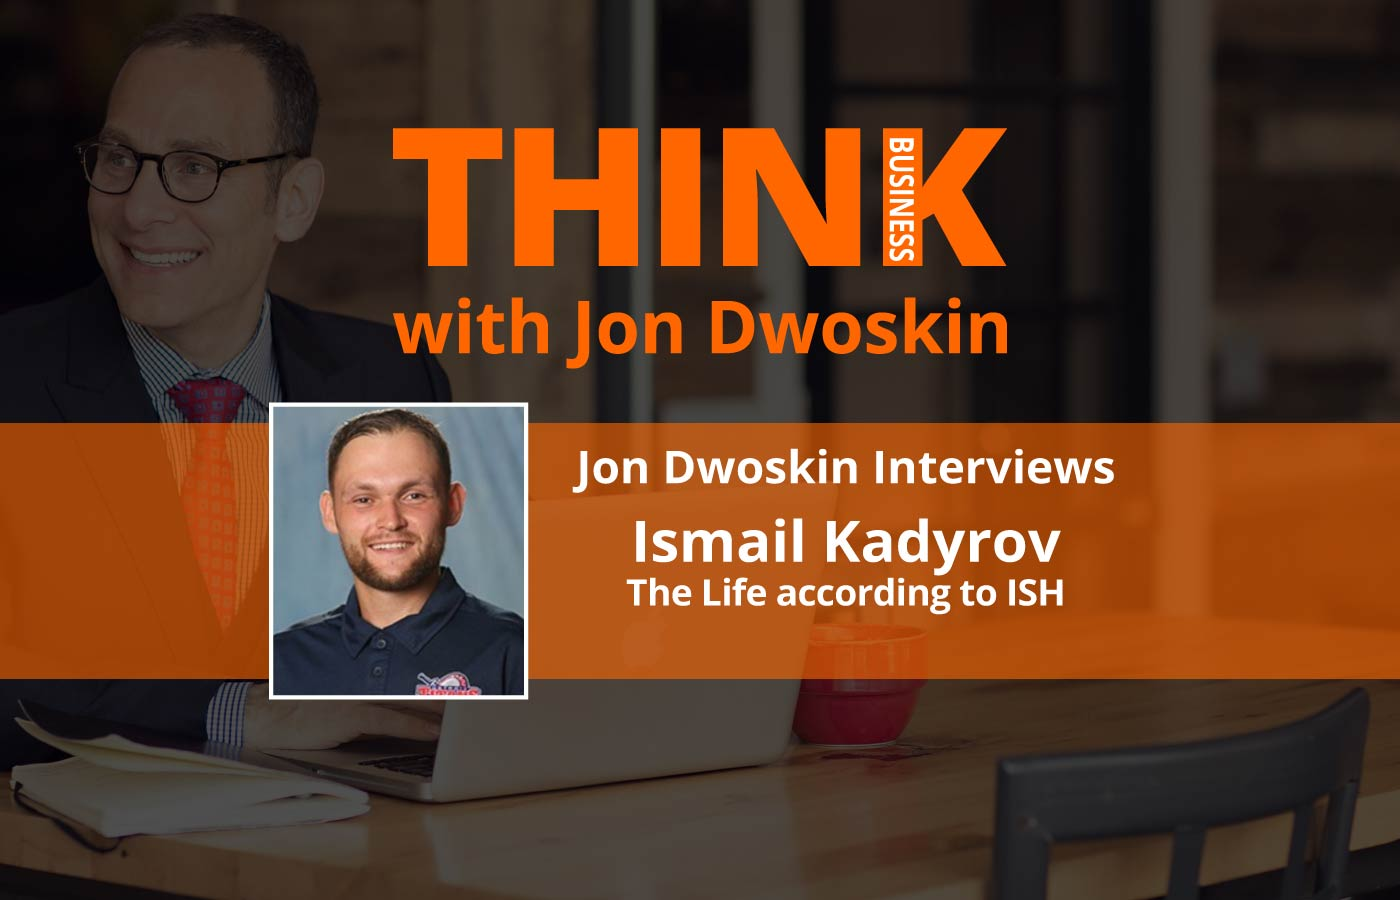 THINK Business Podcast: Jon Dwoskin Interviews Ismail Kadyrov, CEO The Life according to ISH